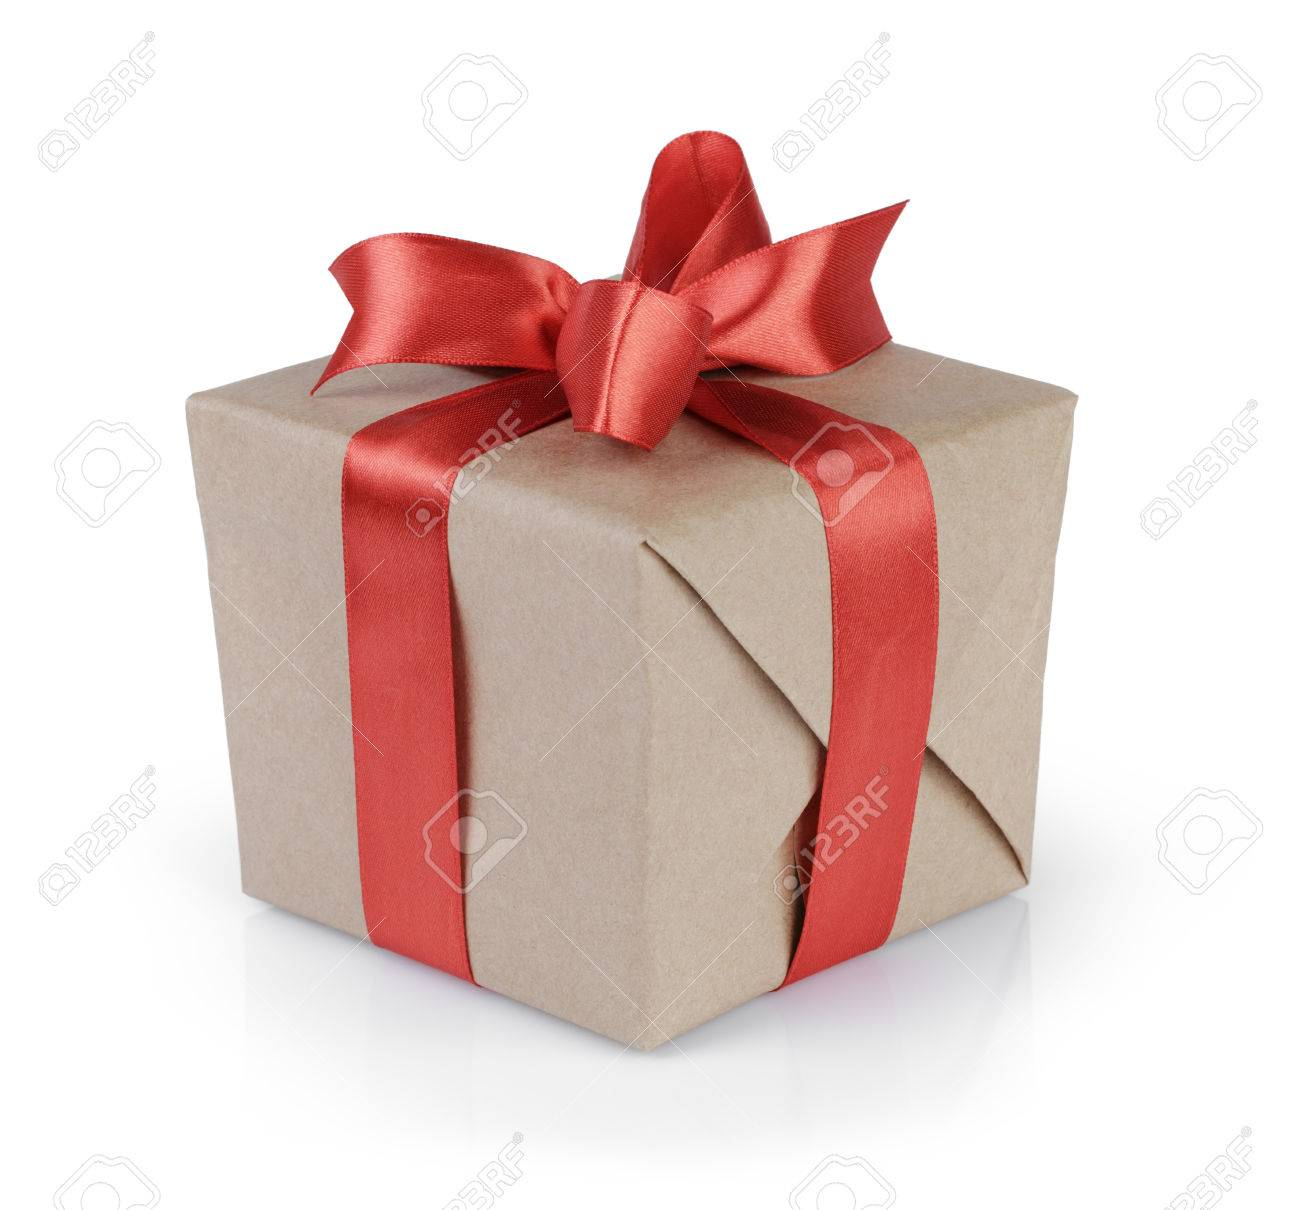 cube gift box wrapped with kraft paper and red bow, isolated - 30764344